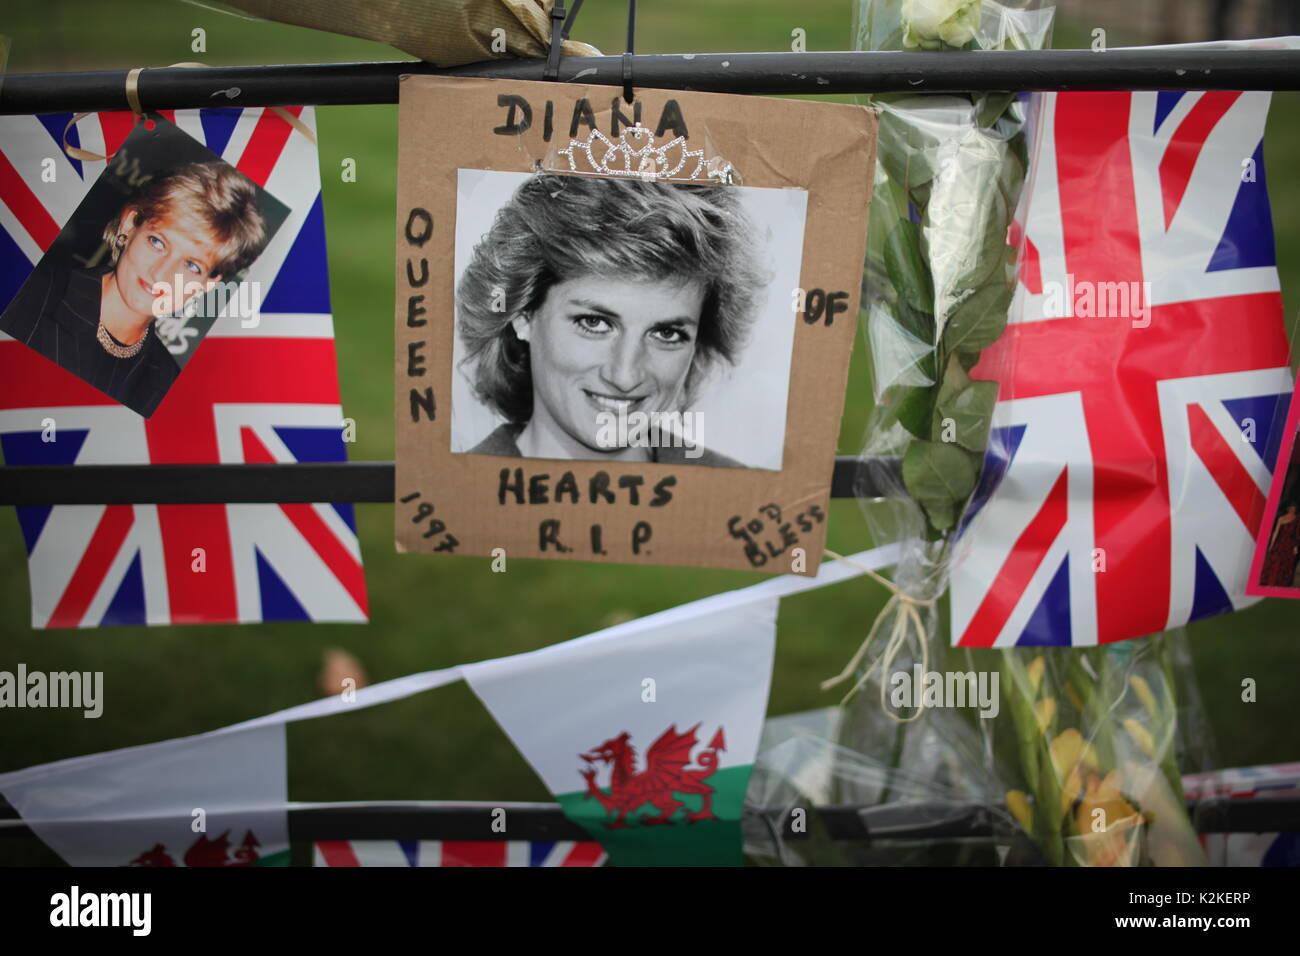 London, UK. 31st Aug, 2017. People pay tribute to Princess Diana at Kensington Palace after 20 years of her death, London, UK Credit: Nastia M/Alamy Live News - Stock Image